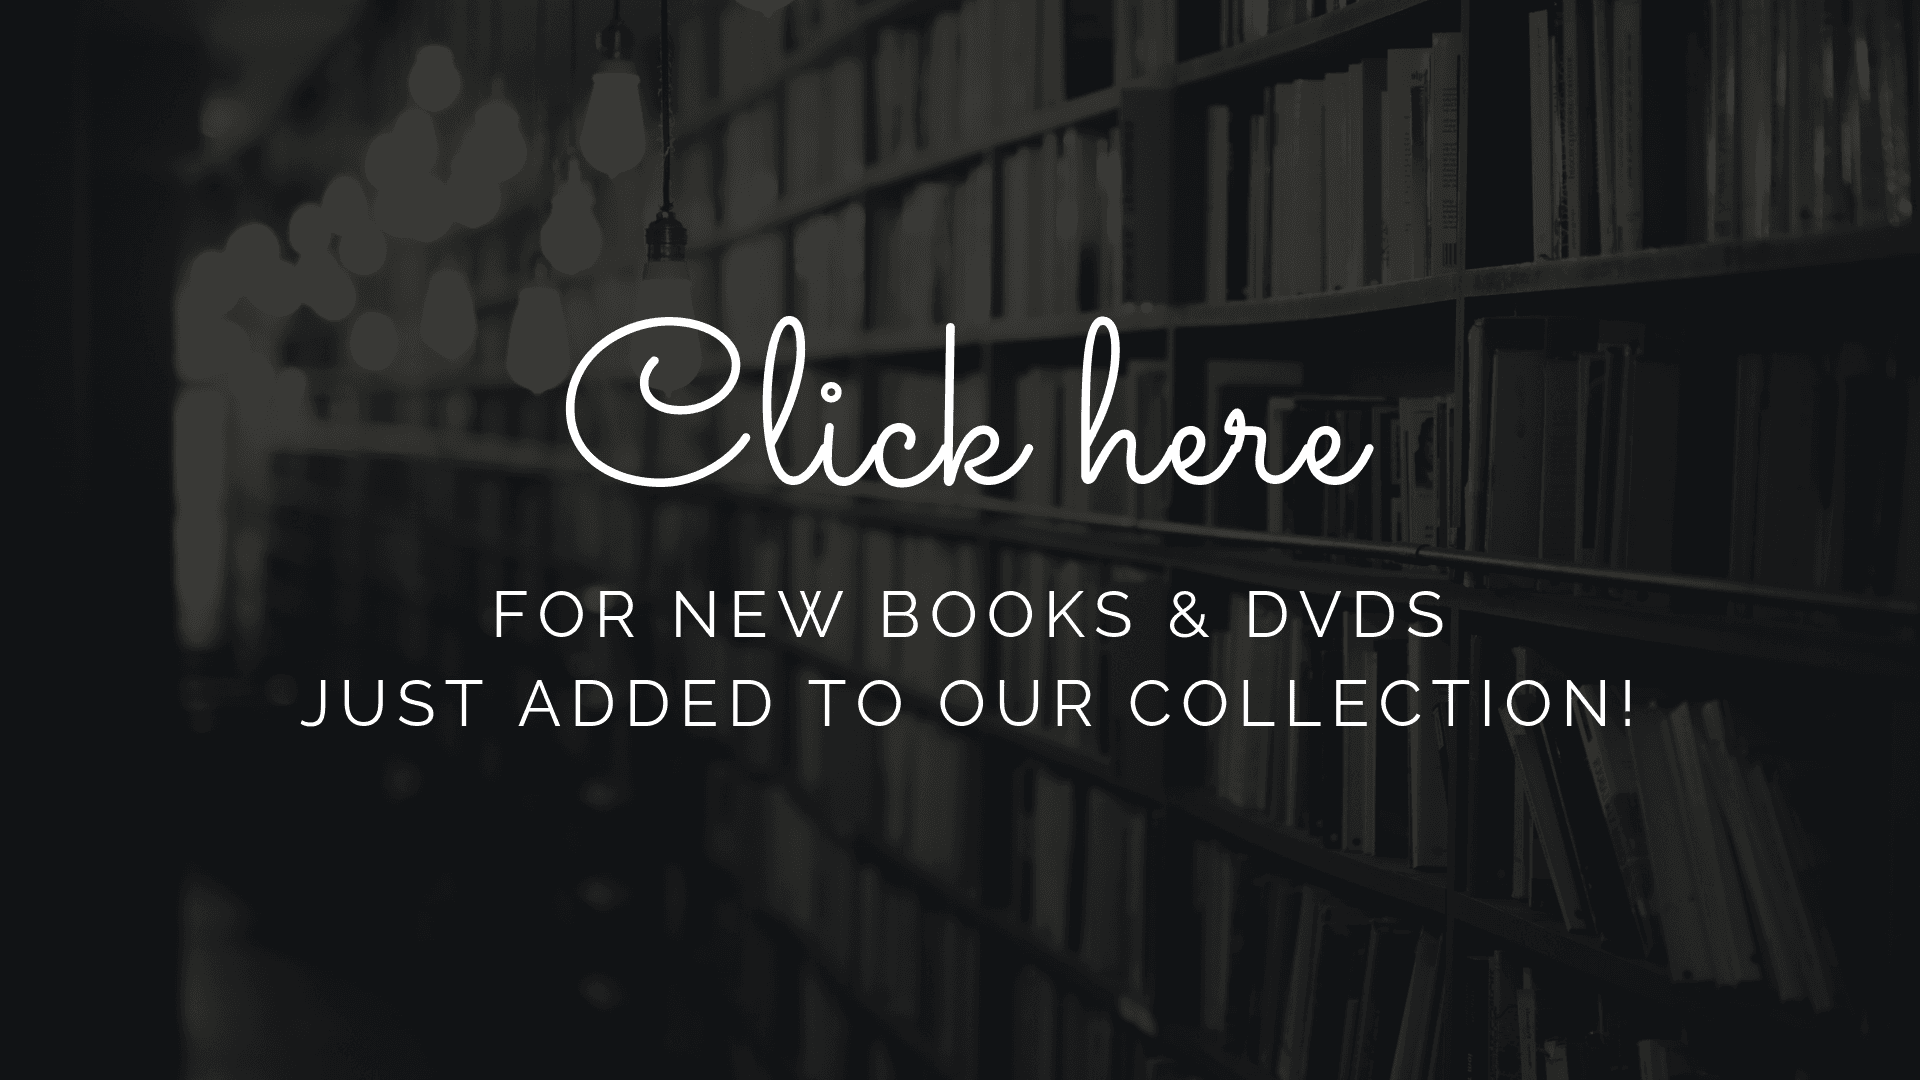 Click here for new books and DVDs just added to our collection!